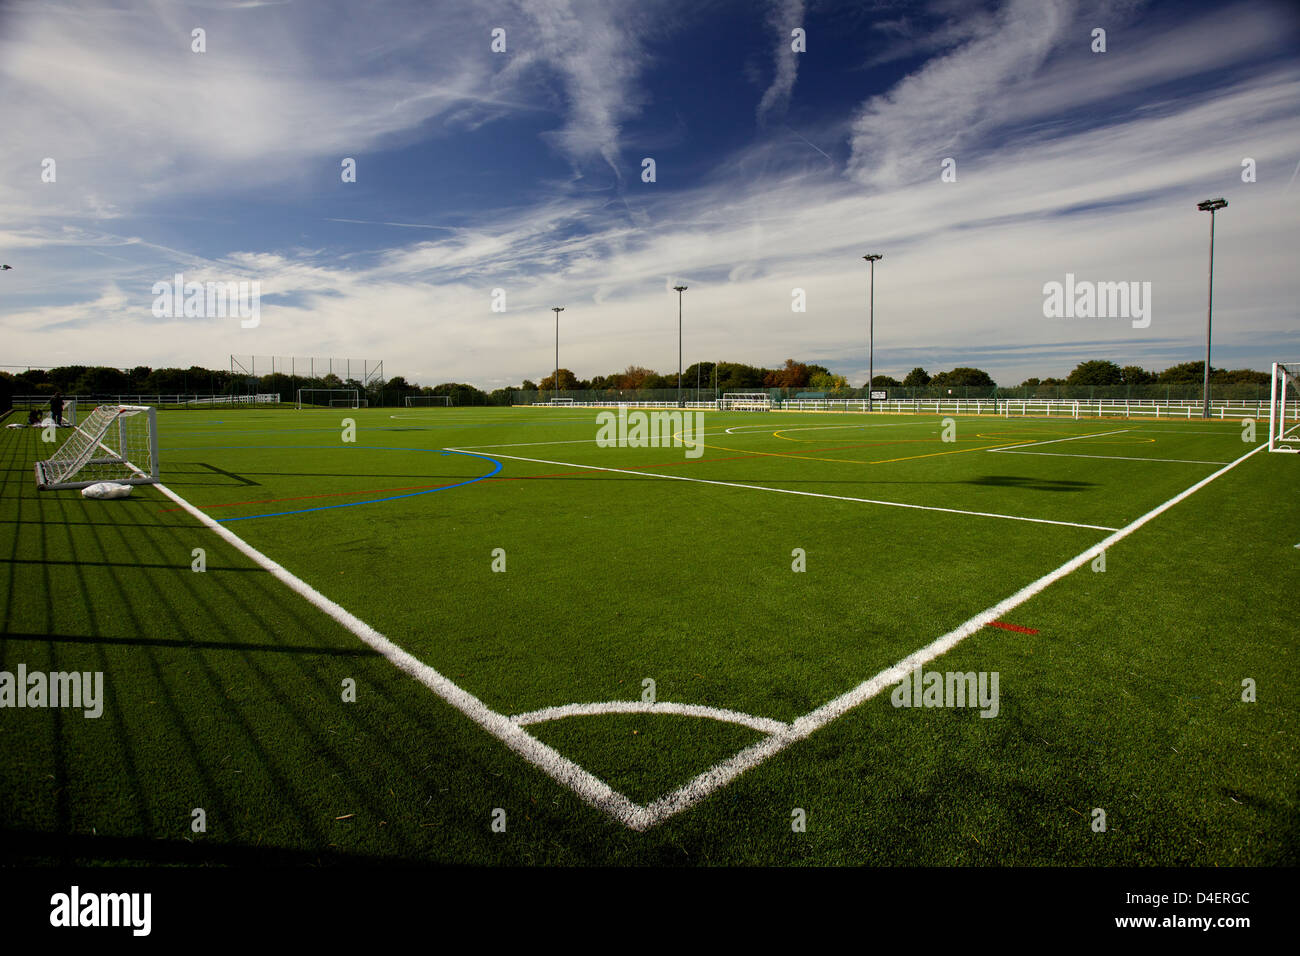 3G sports pitch image by Vicky Matthers/iconphotomedia - Stock Image